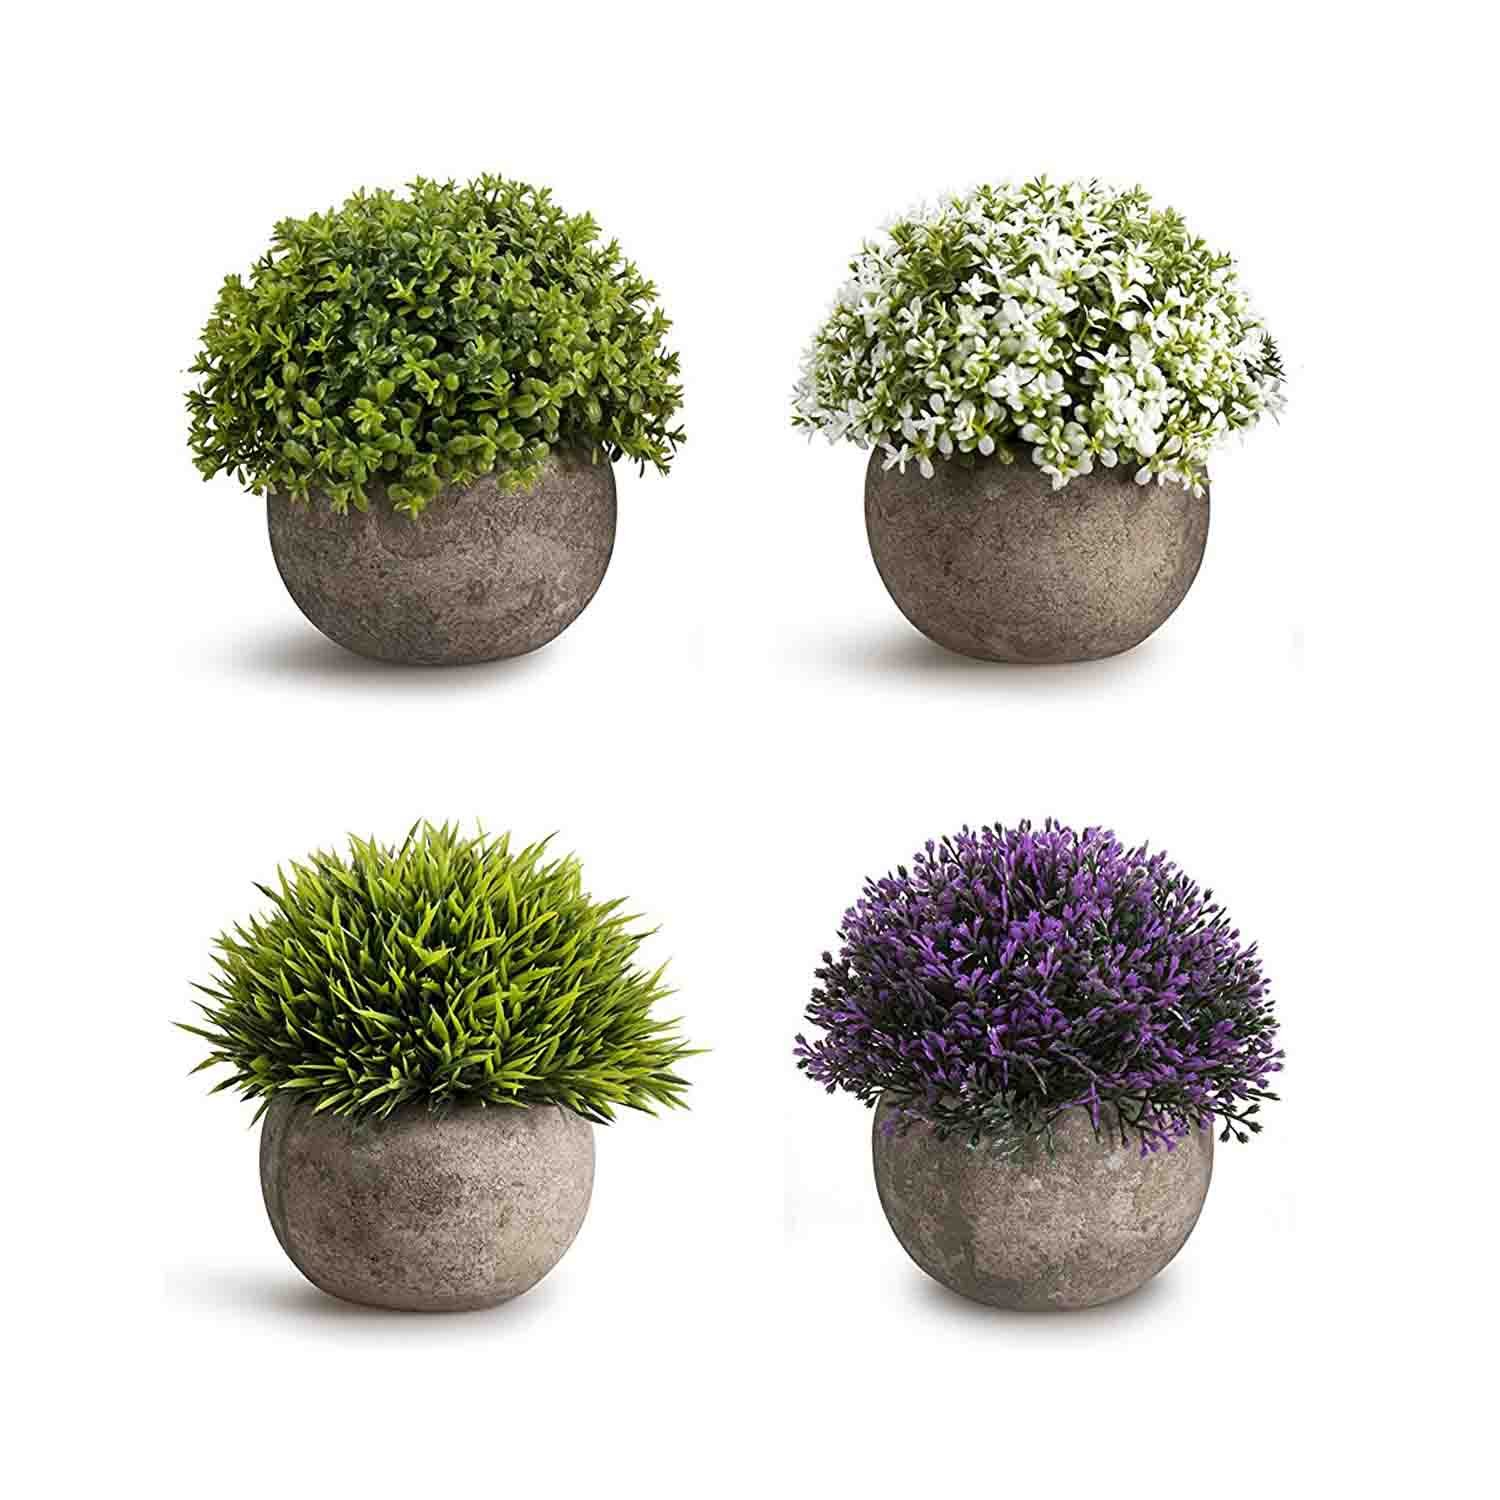 CEWOR 4 pack Artificial Mini Plants Plastic Mini Plants Topiary Shrubs Fake Plants for Bathroom,House Decorations,4 styles by CEWOR